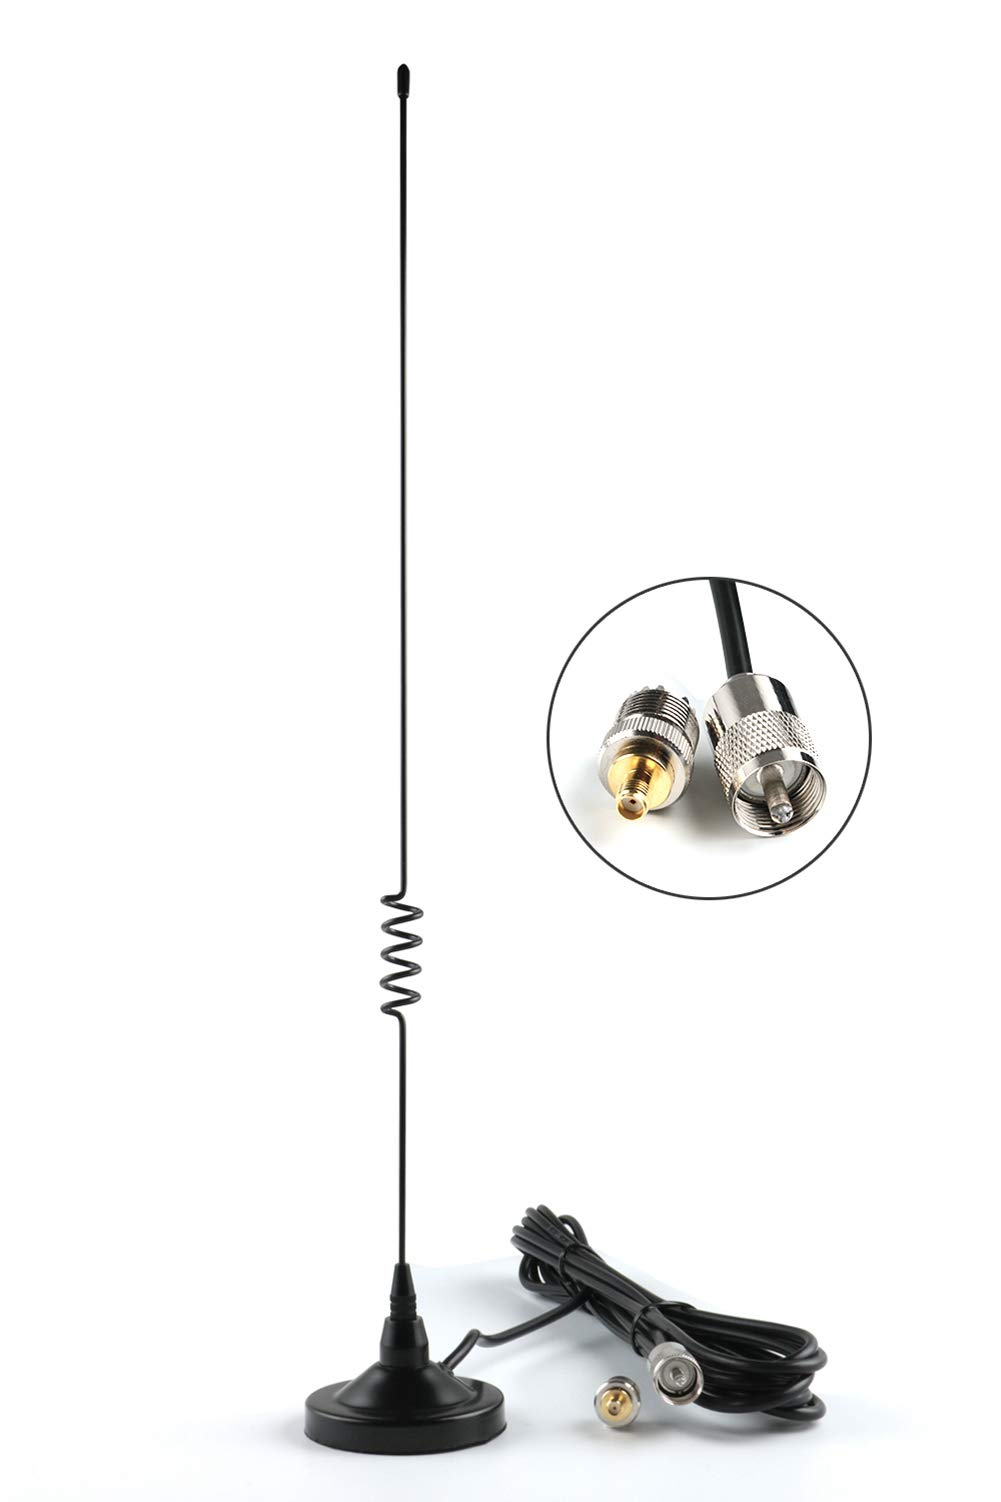 CB Radios Antenna Dual-Band VHF/UHF (136-174, 400-470 Mhz) with PL-259 Connector and SMA-F Adaptor and 16FT Cable for YAESU ICOM CB Radios